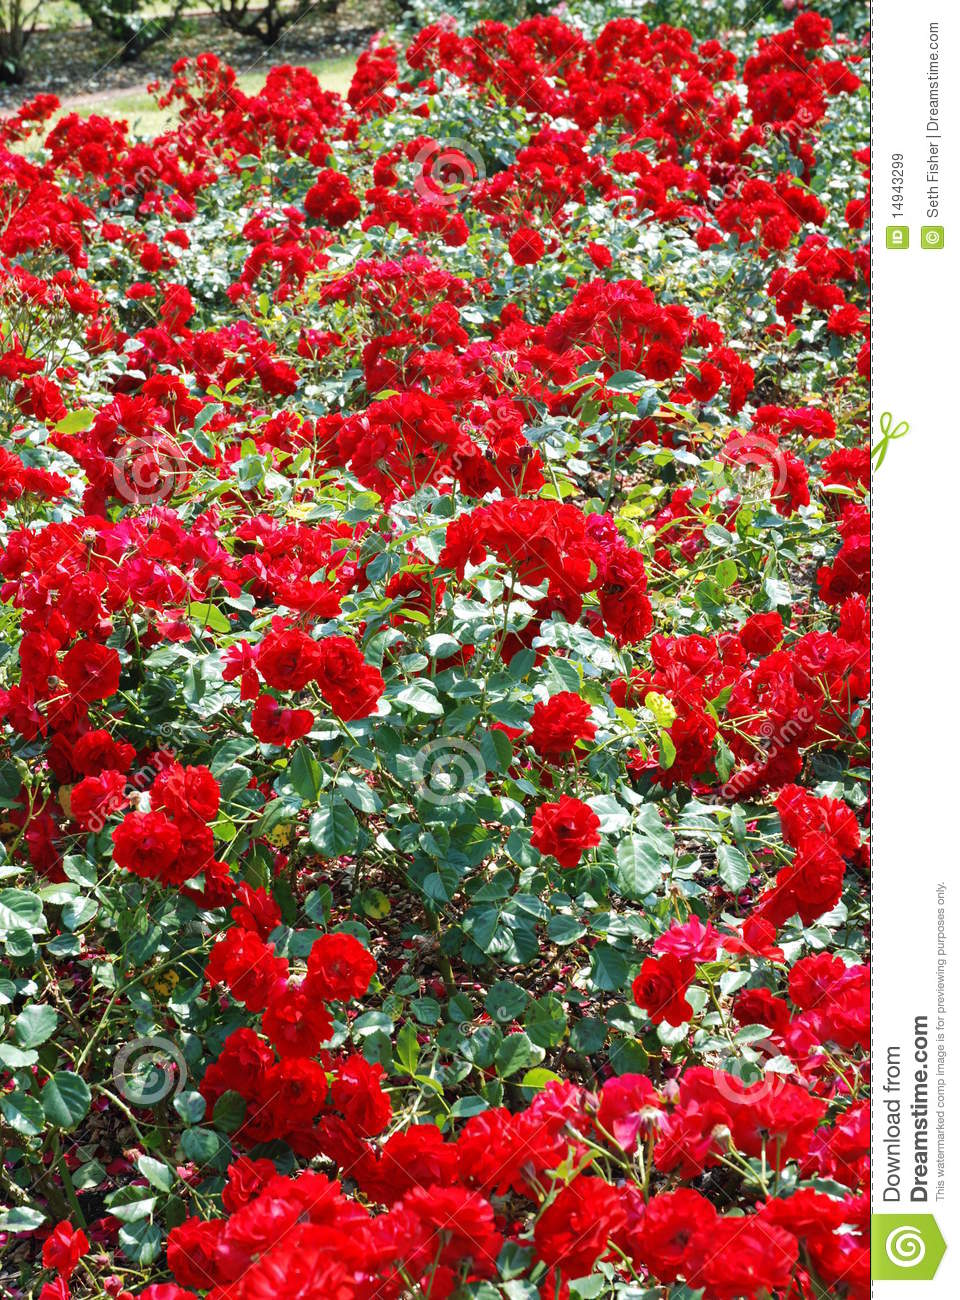 Roses In Garden: Red Rose Garden Stock Image. Image Of Leaves, Cluster